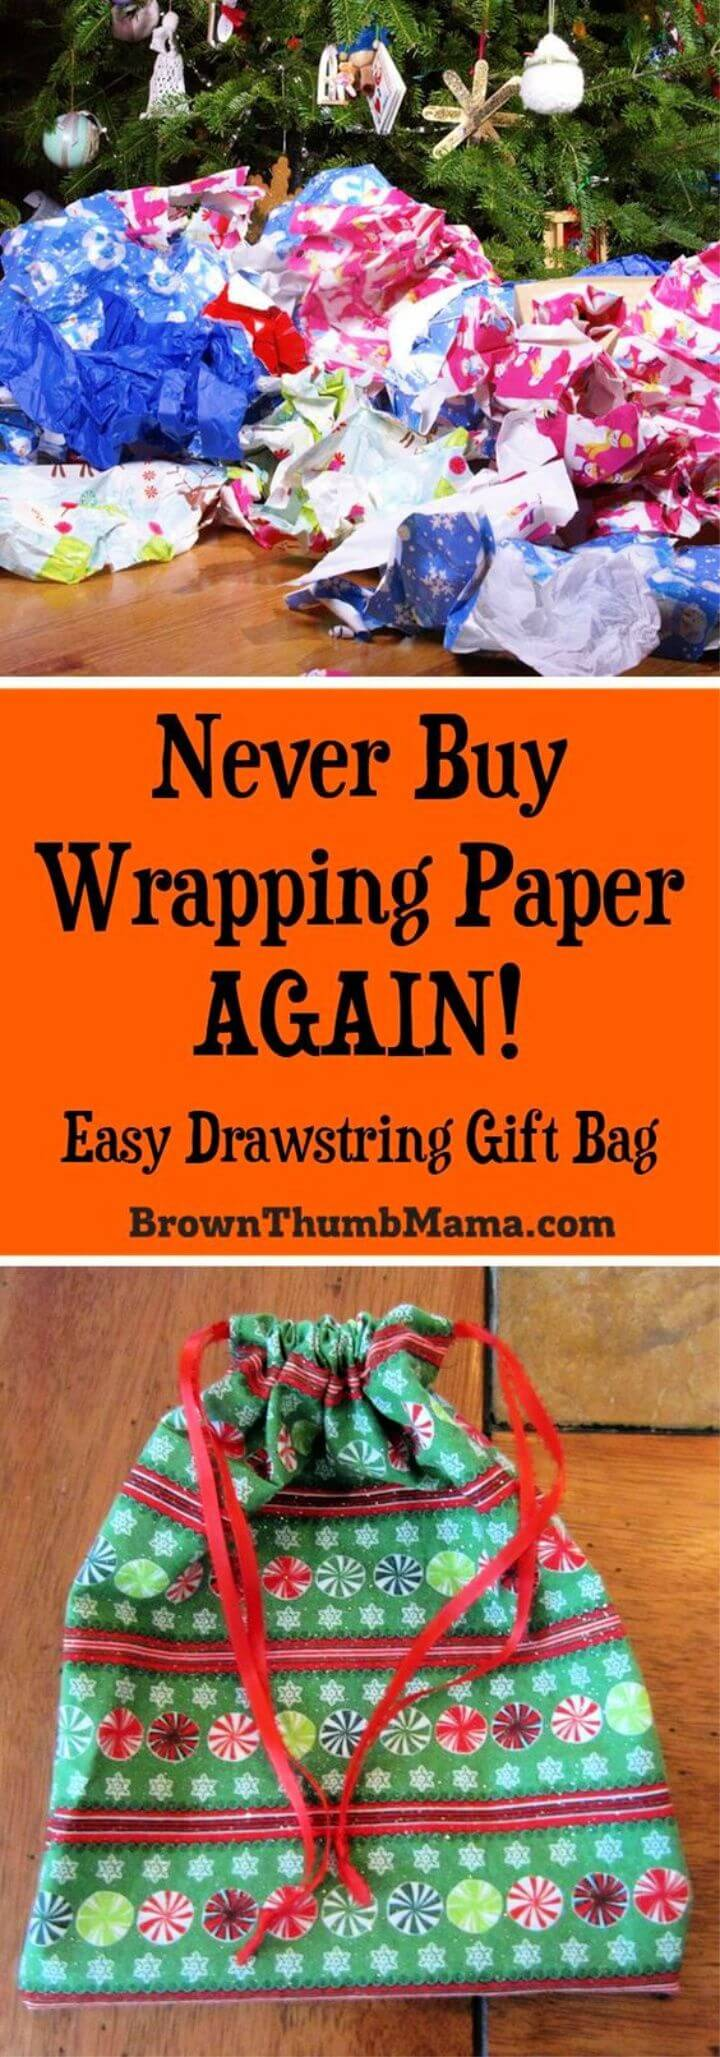 Sew an Easy Drawstring Gift Bag